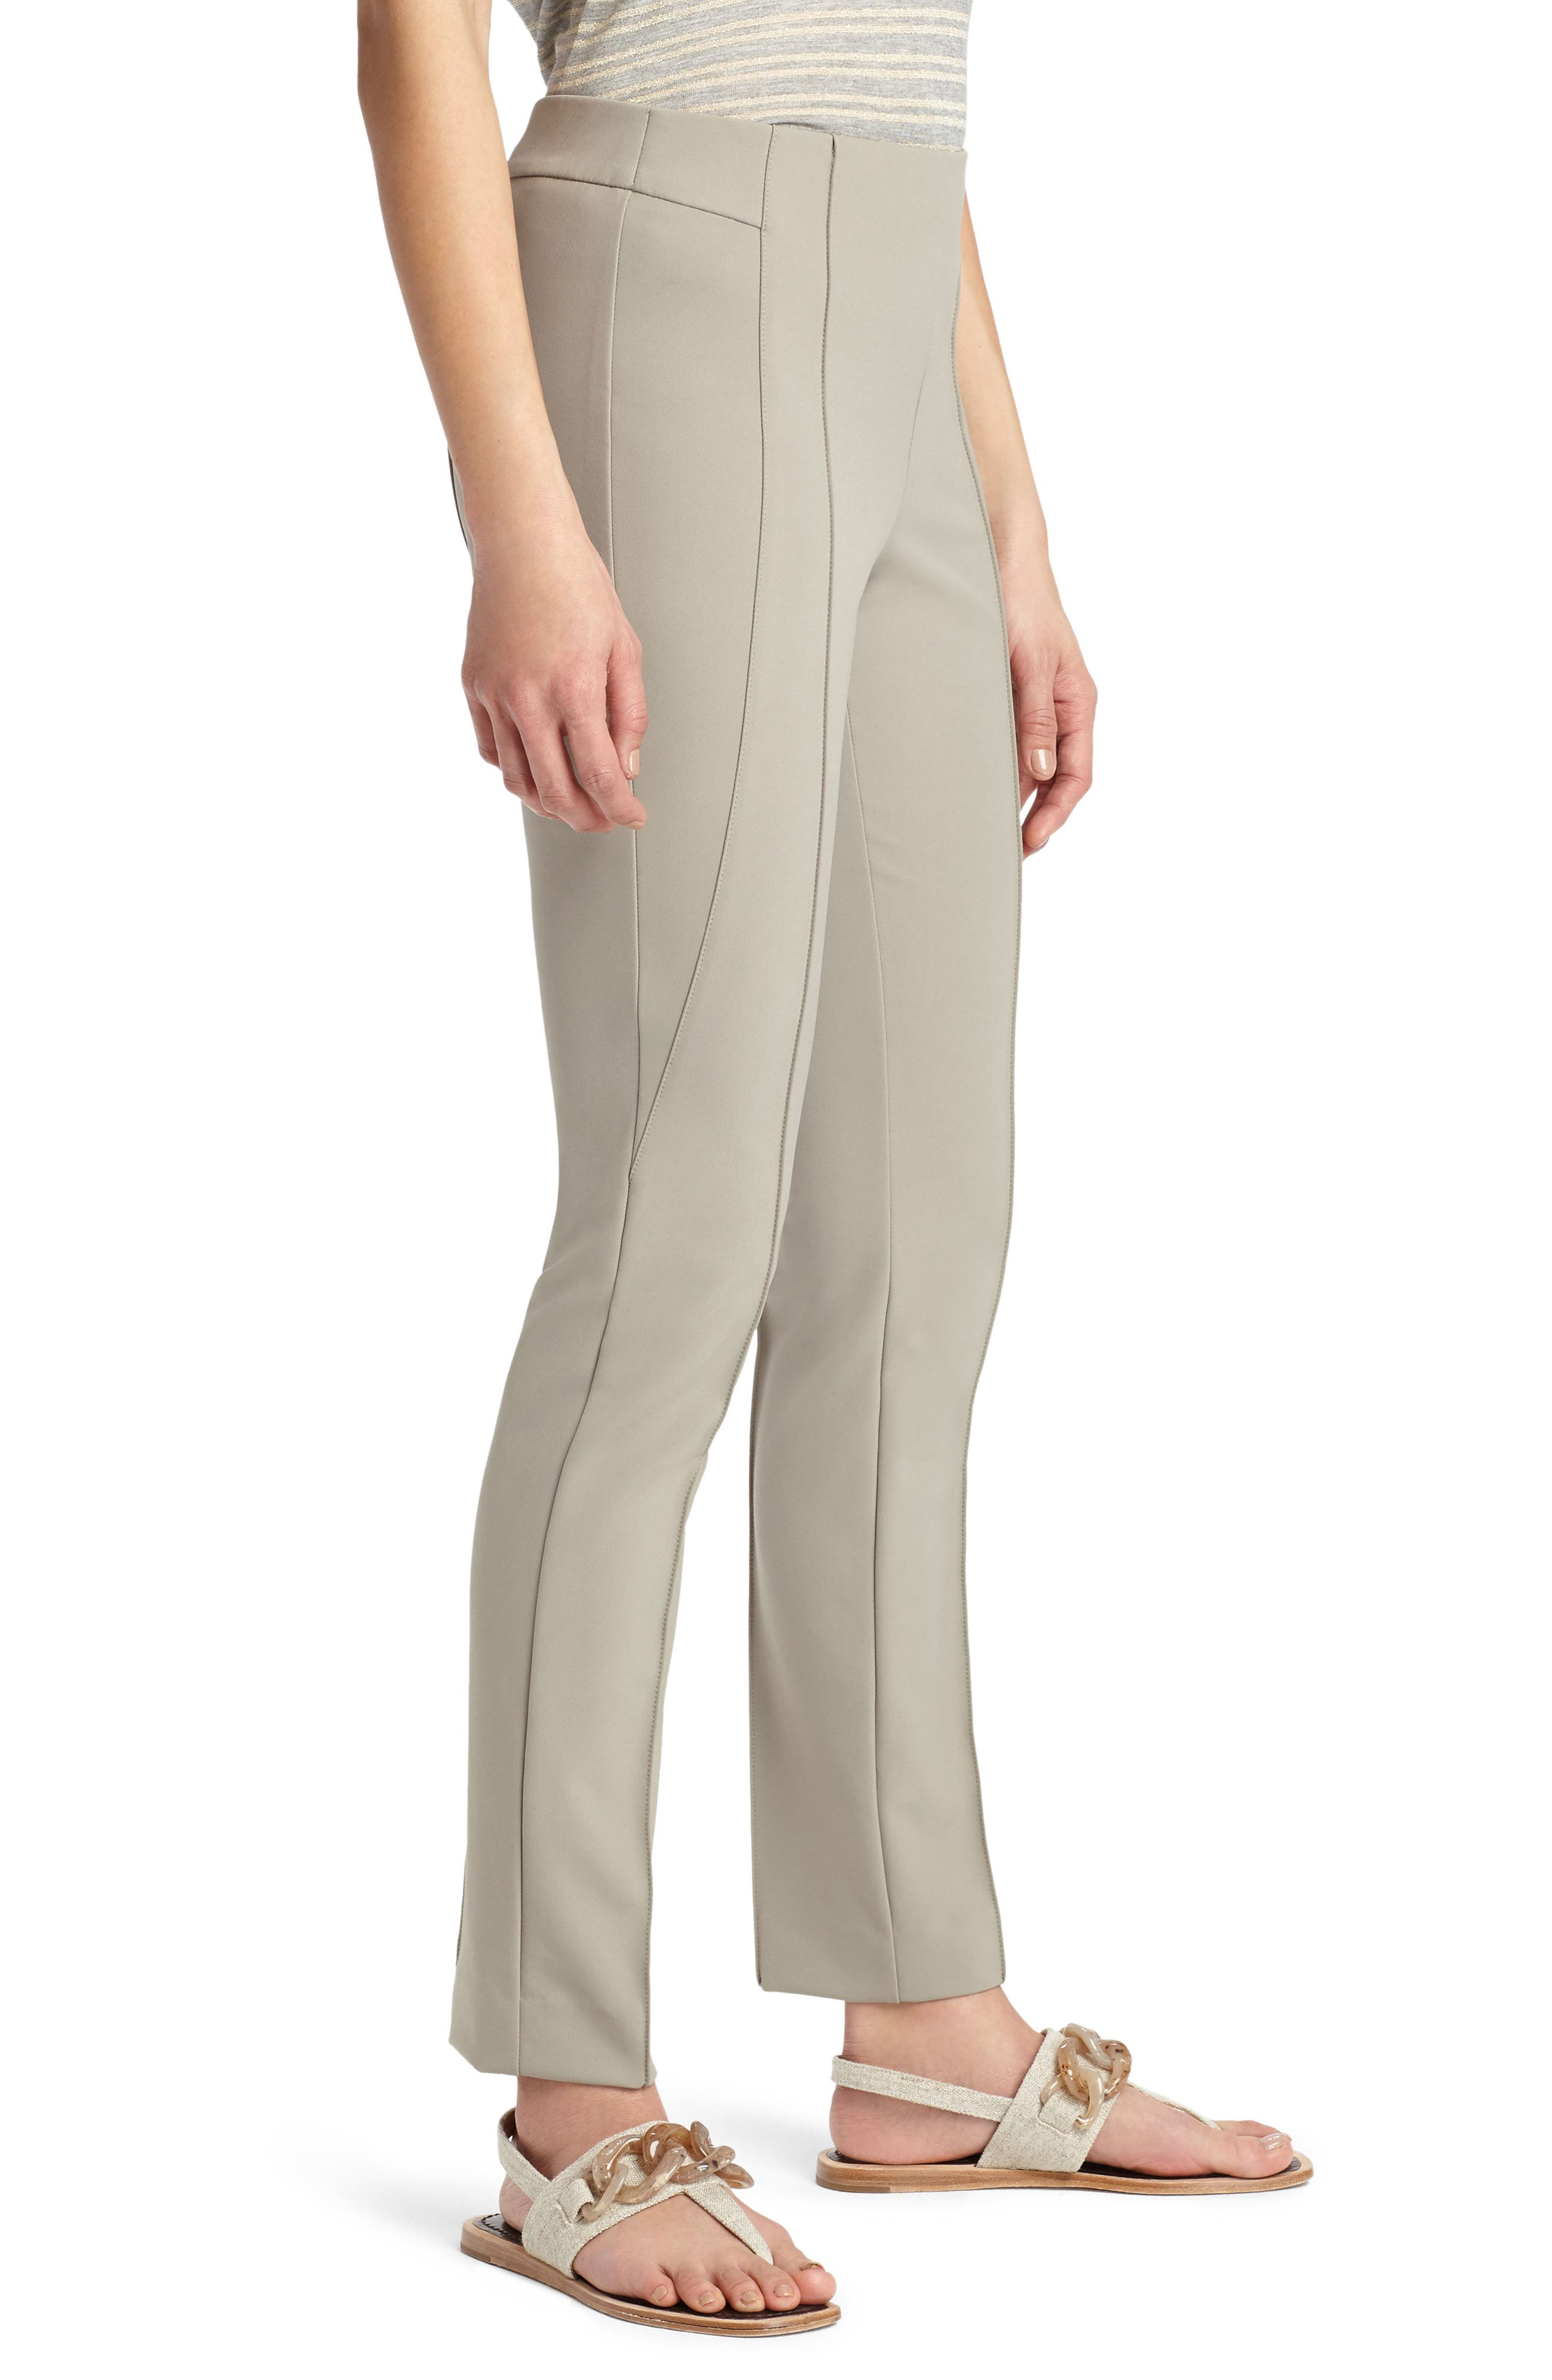 'Gramercy' Acclaimed Stretch Pants,                             Alternate thumbnail 3, color,                             PARTRIDGE